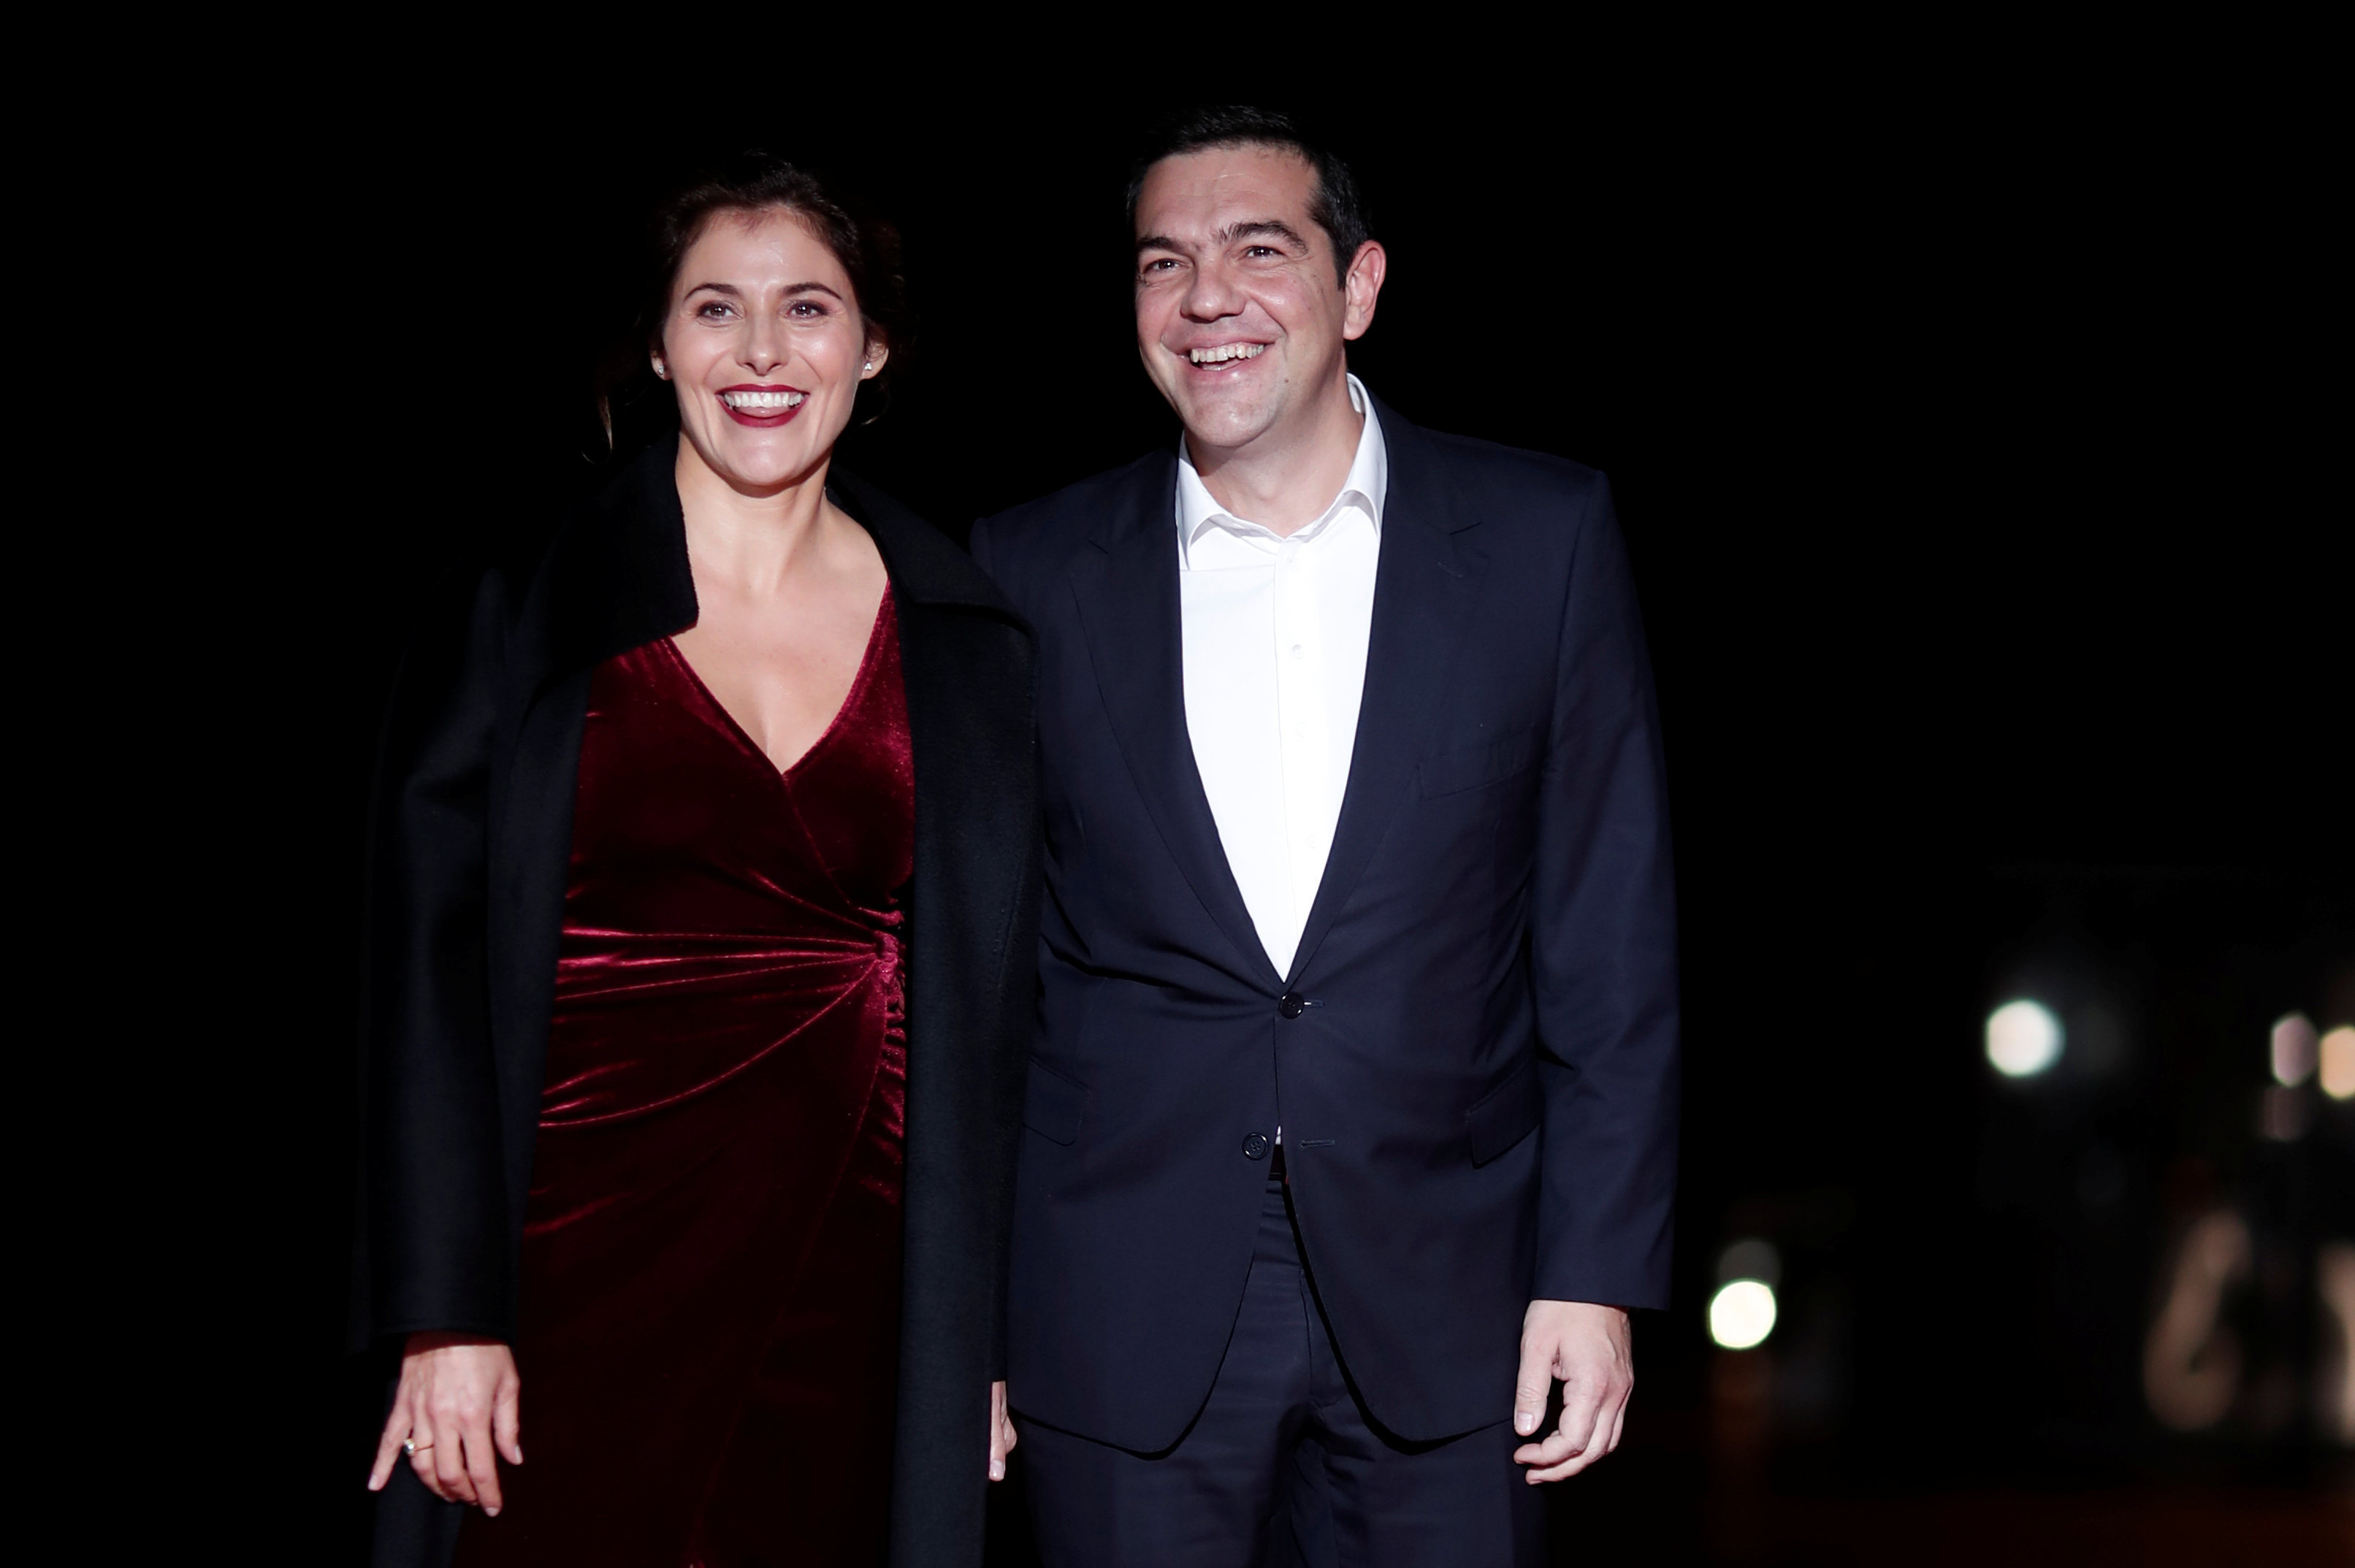 Greek Prime Minister Alexis Tsipras and his partner Peristera Baziana arrive to attend a visit and a dinner at the Orsay Museum in Paris